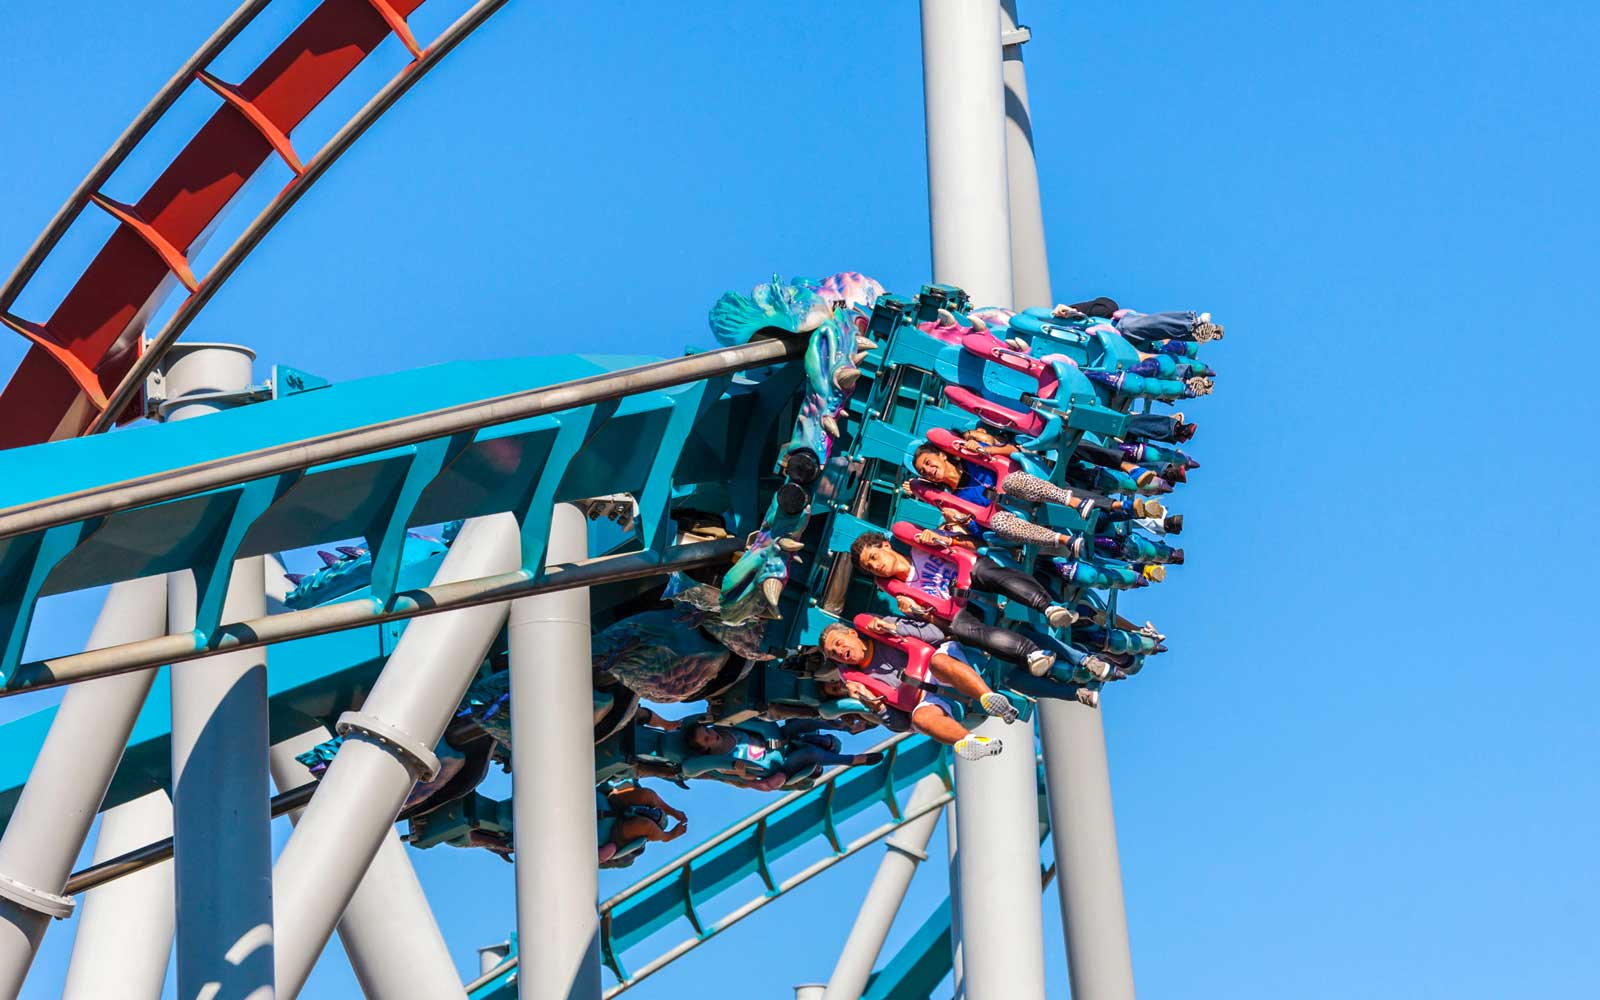 Dragon Challenge Ride at Universal to be Replaced